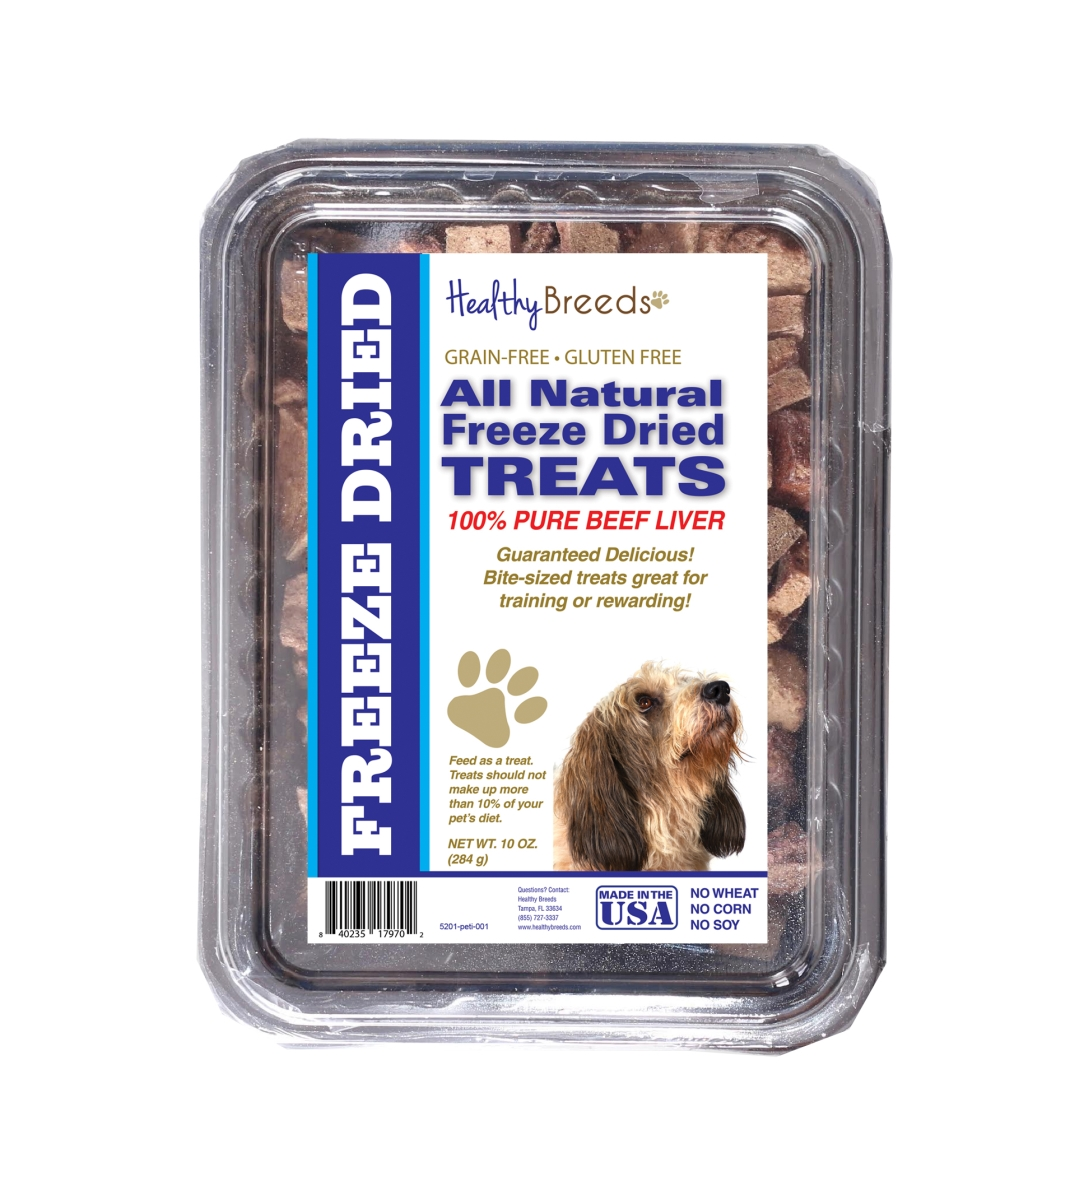 Healthy Breeds 840235179702 10 oz Petits Bassets Griffons Vendeen All Natural Freeze Dried Treats Beef Liver